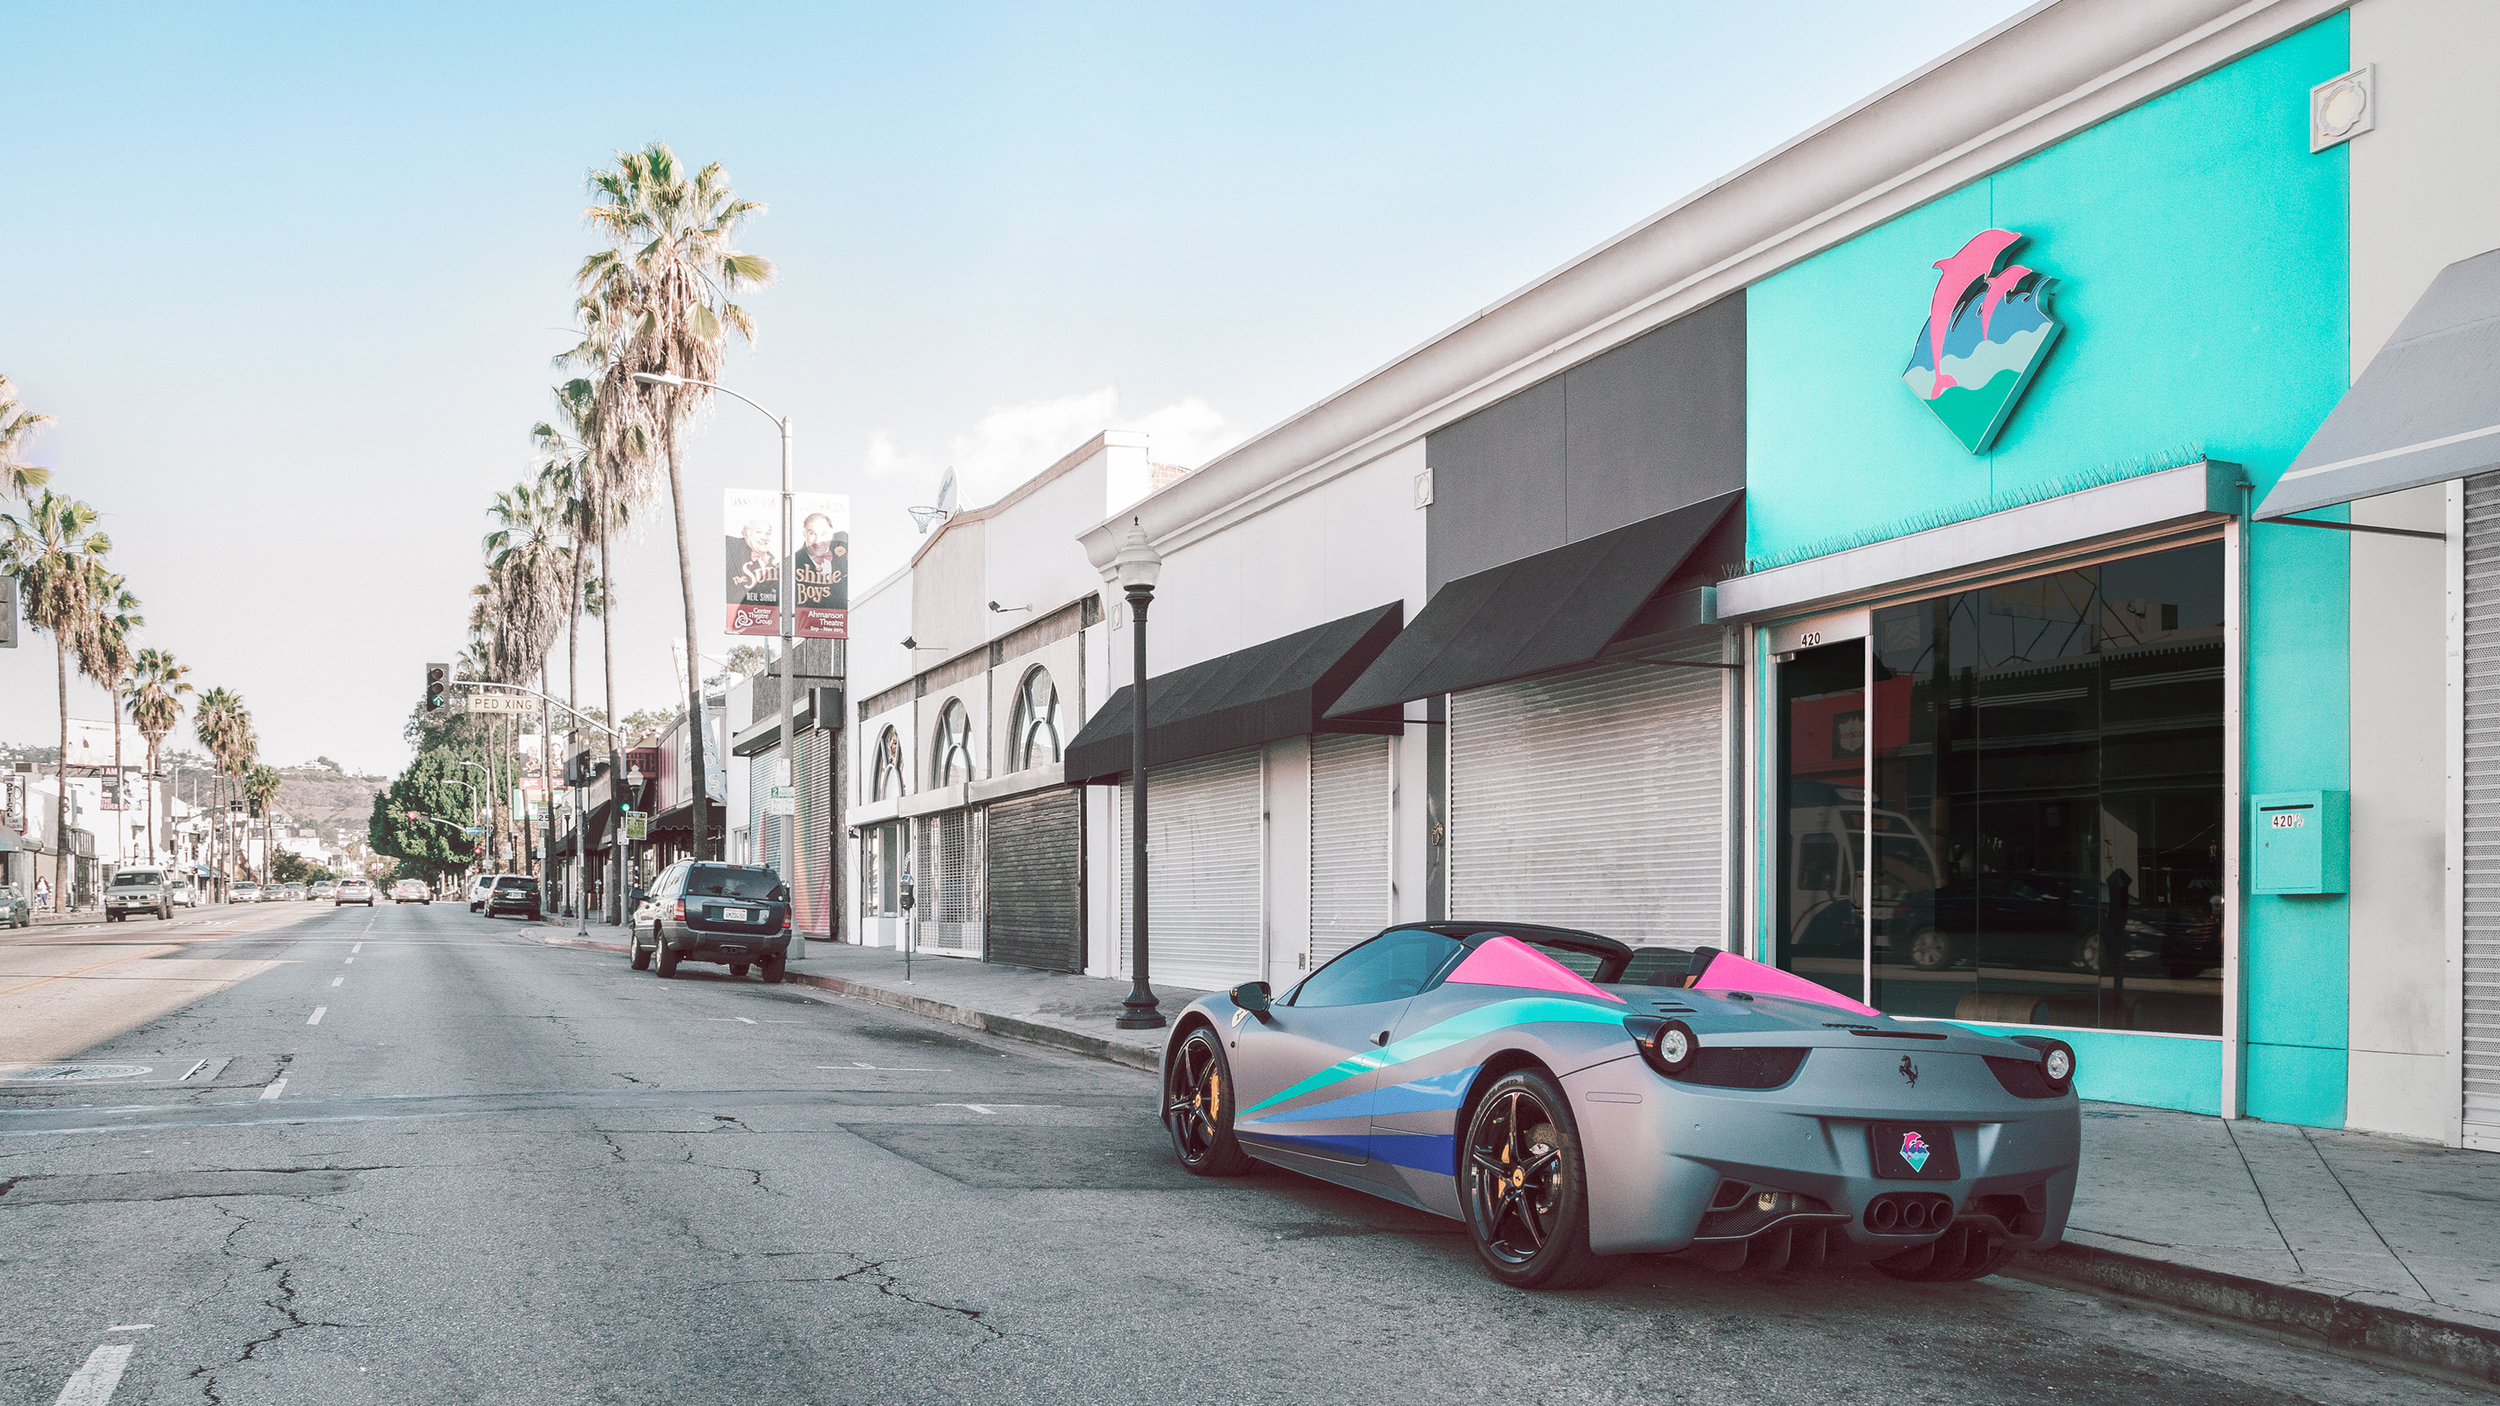 for PINK+DOLPHIN LA, by Me.